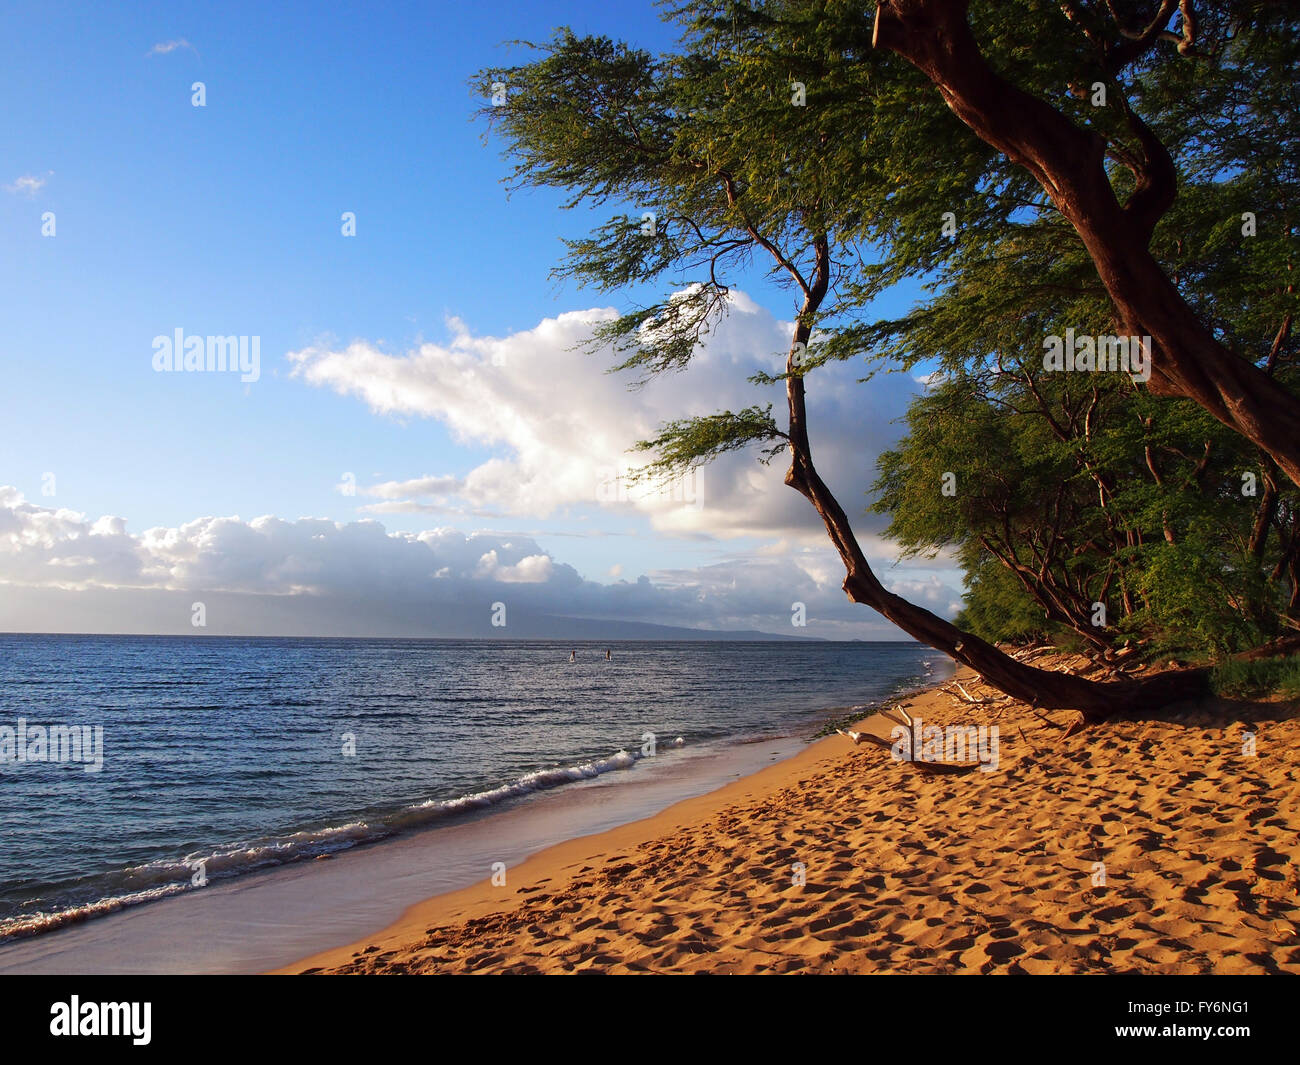 Kaanapali Beach at Dusk with gentle waves and trees. Island of Lanai can be seen in the distance on Maui, Hawaii. - Stock Image